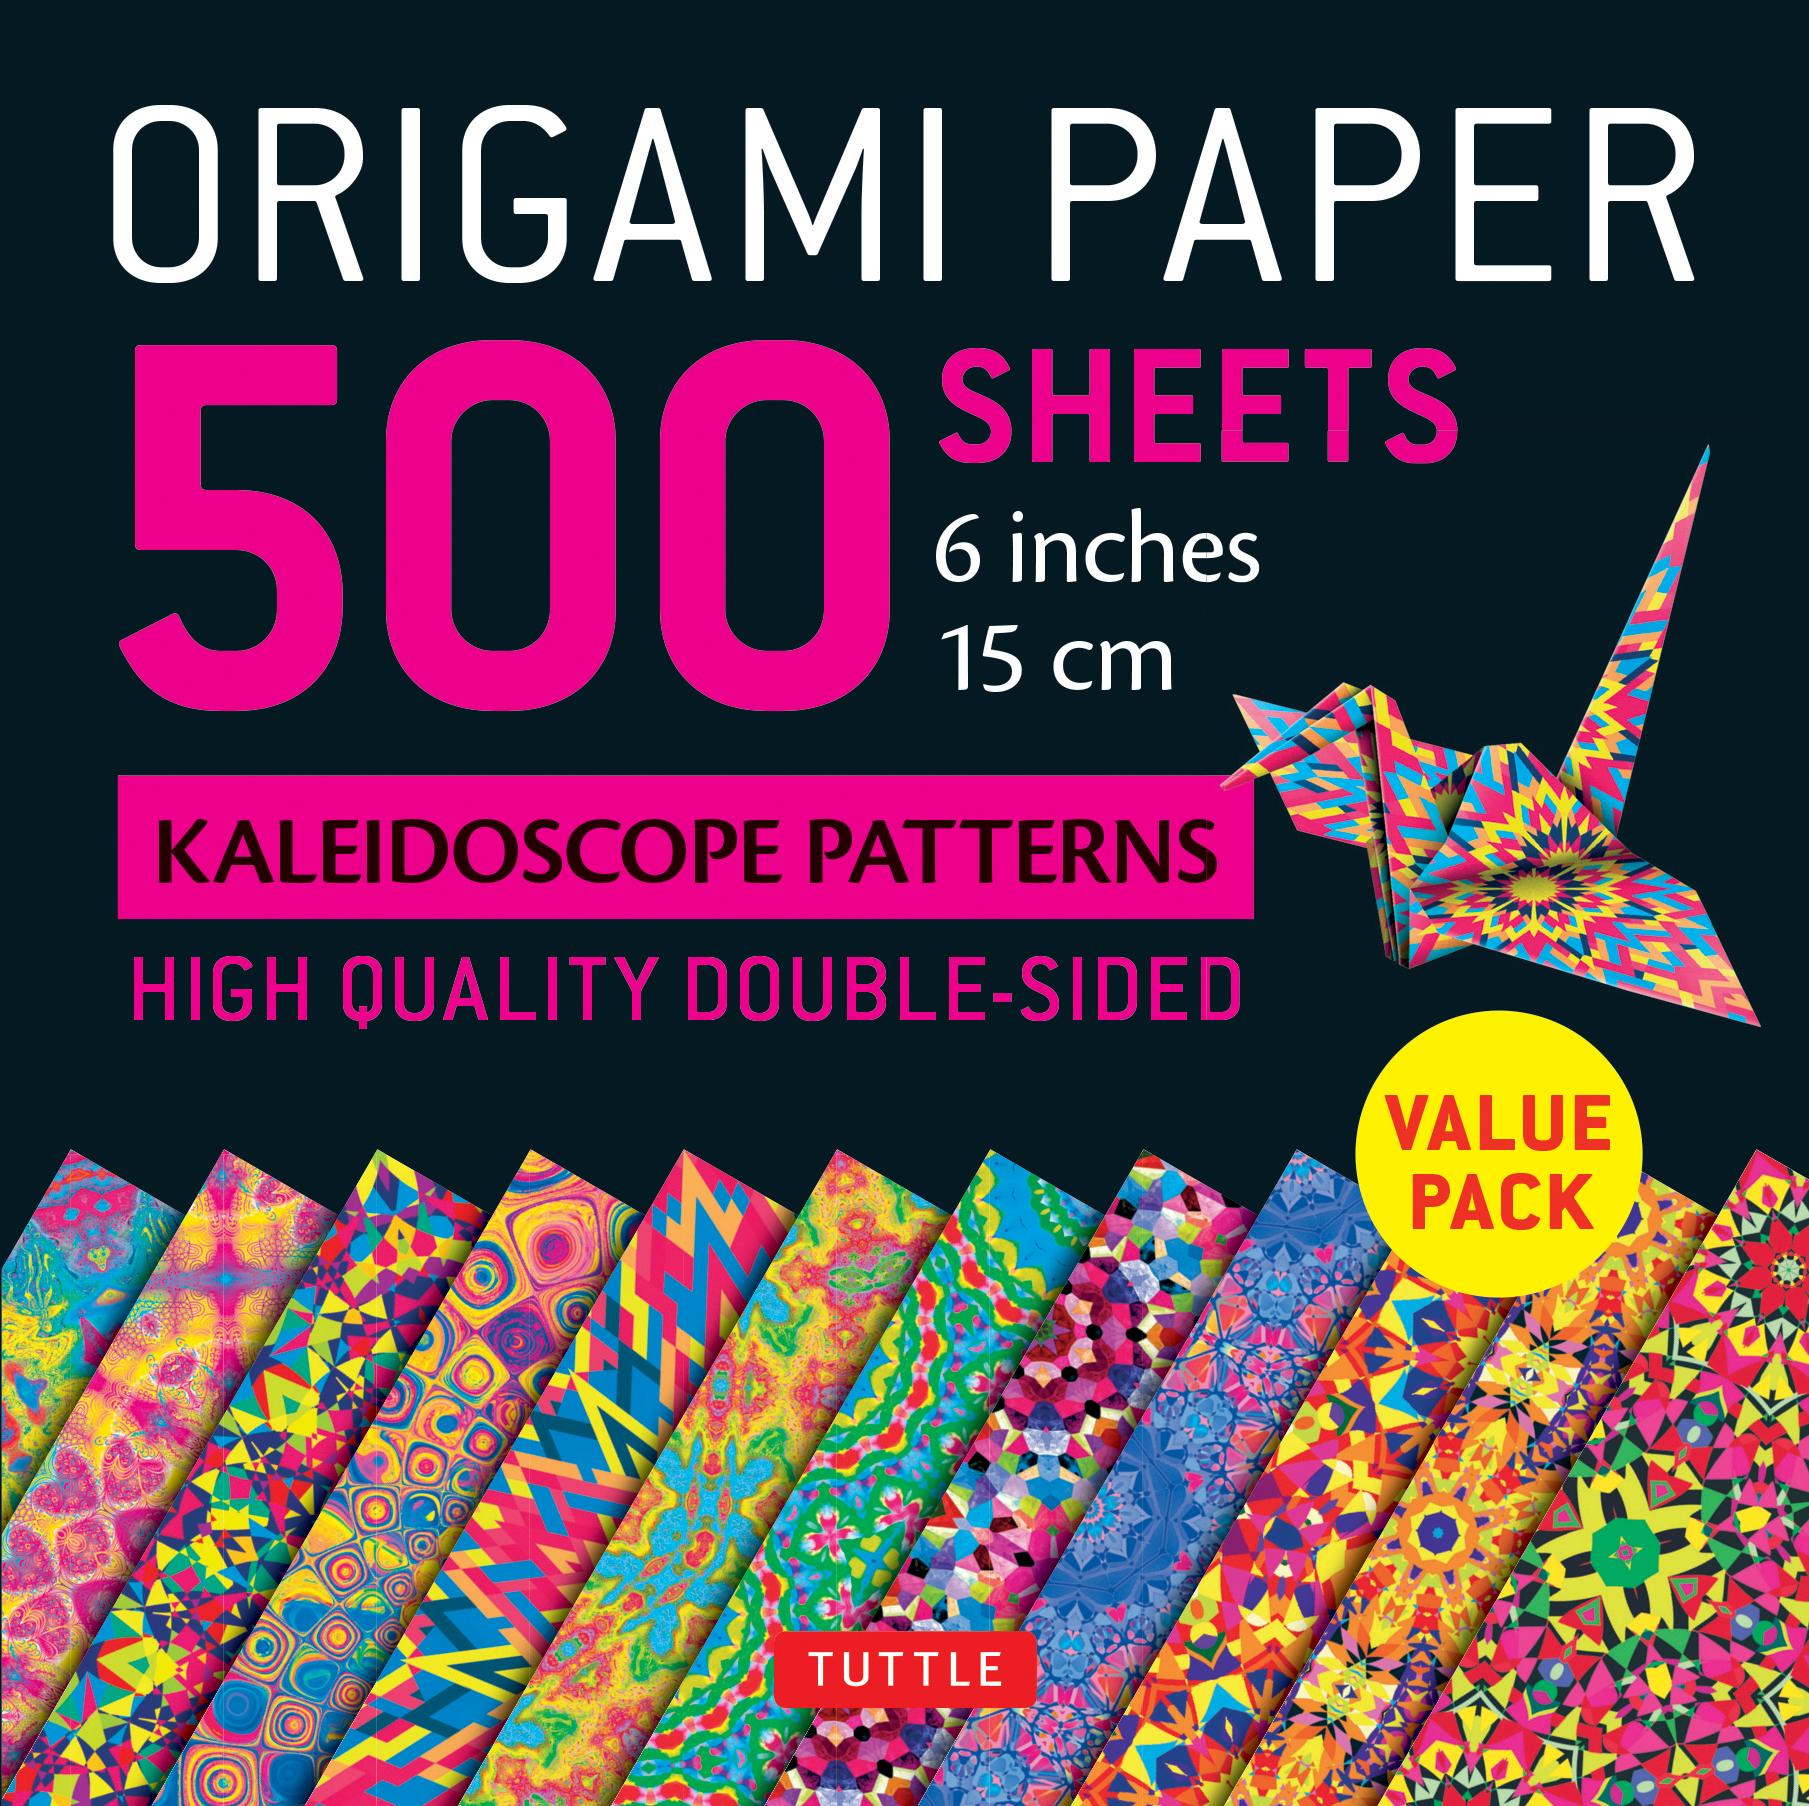 "Origami Paper 500 Sheets Kaleidoscope Patterns 6"" (15 CM) : Tuttle Origami Paper: High-Quality Origami Sheets Printed with 12 Different Designs: Instructions for 8 Projects Included"